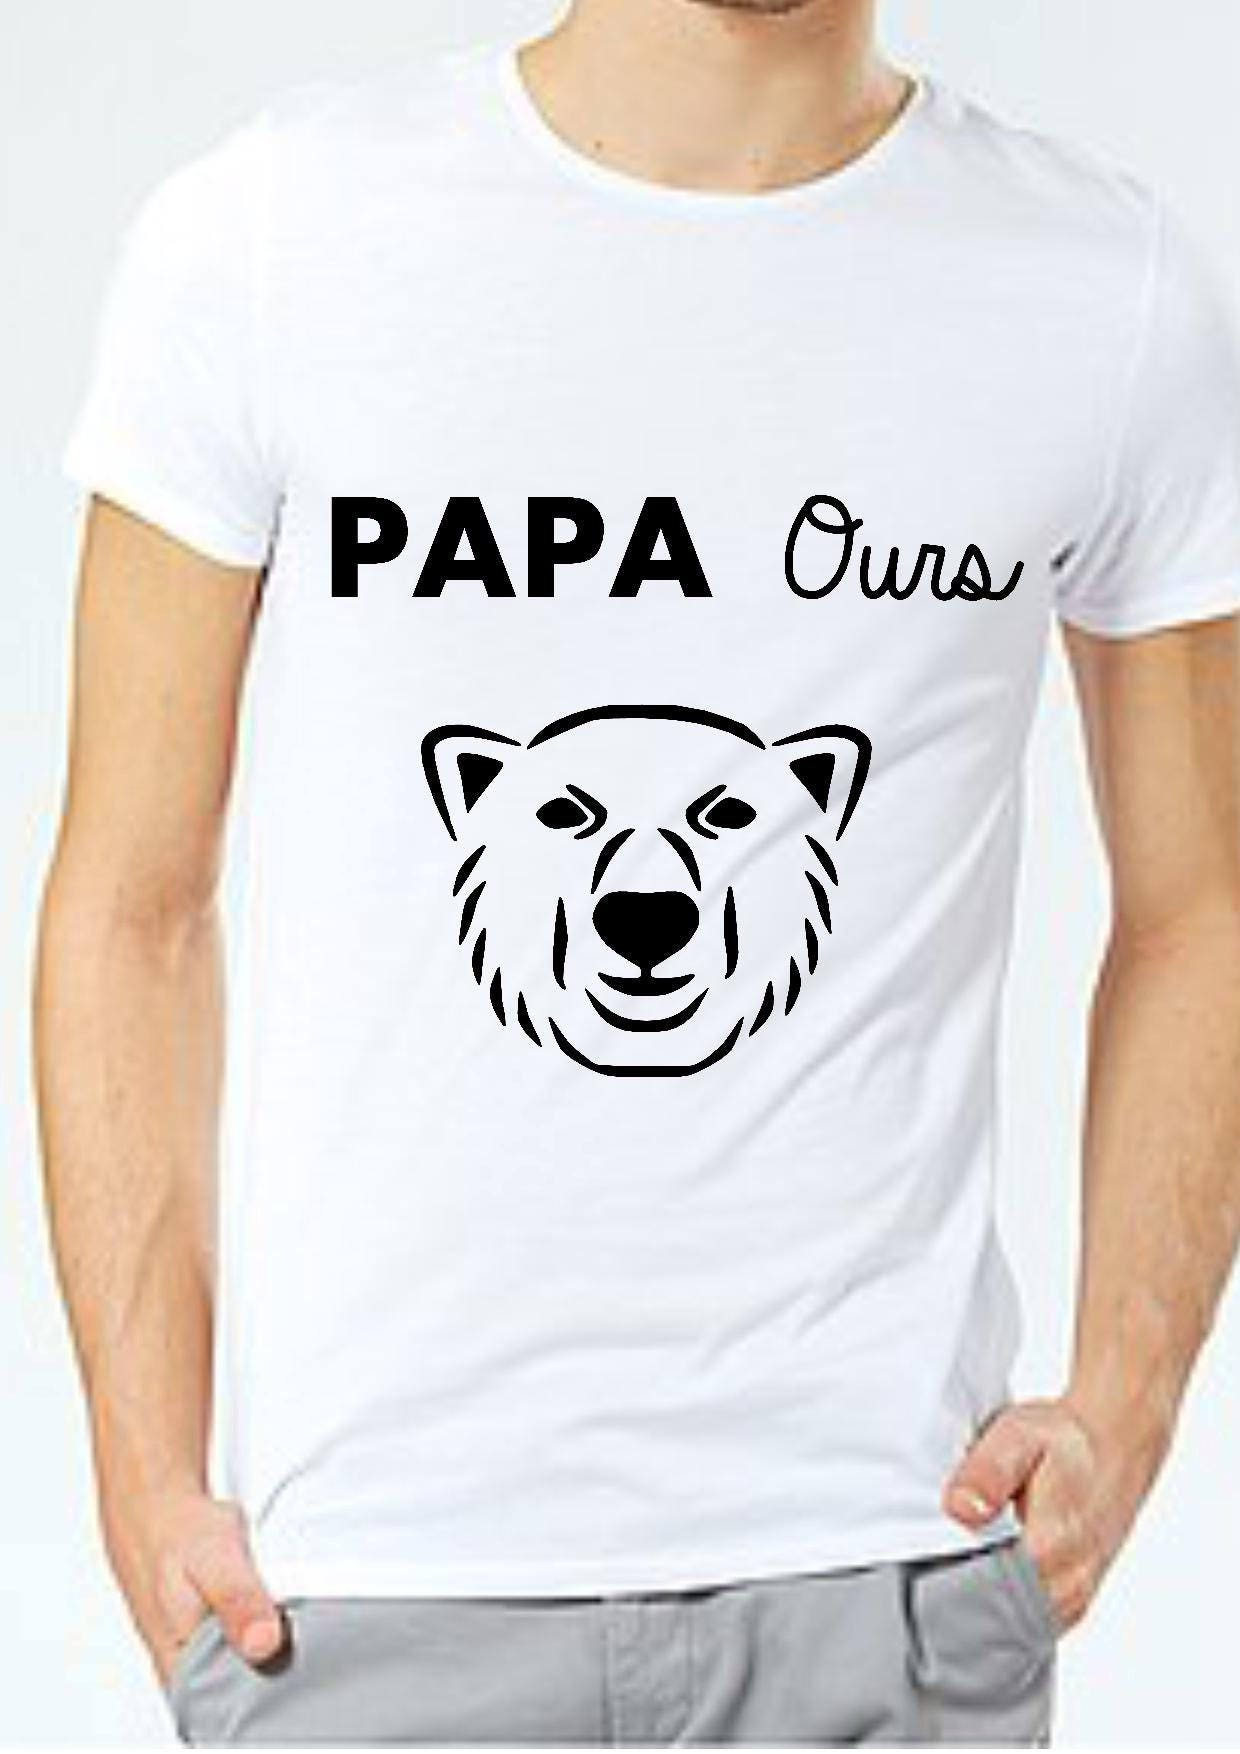 papa ours tee shirt cadeau papa tee shirt humour p re etsy. Black Bedroom Furniture Sets. Home Design Ideas